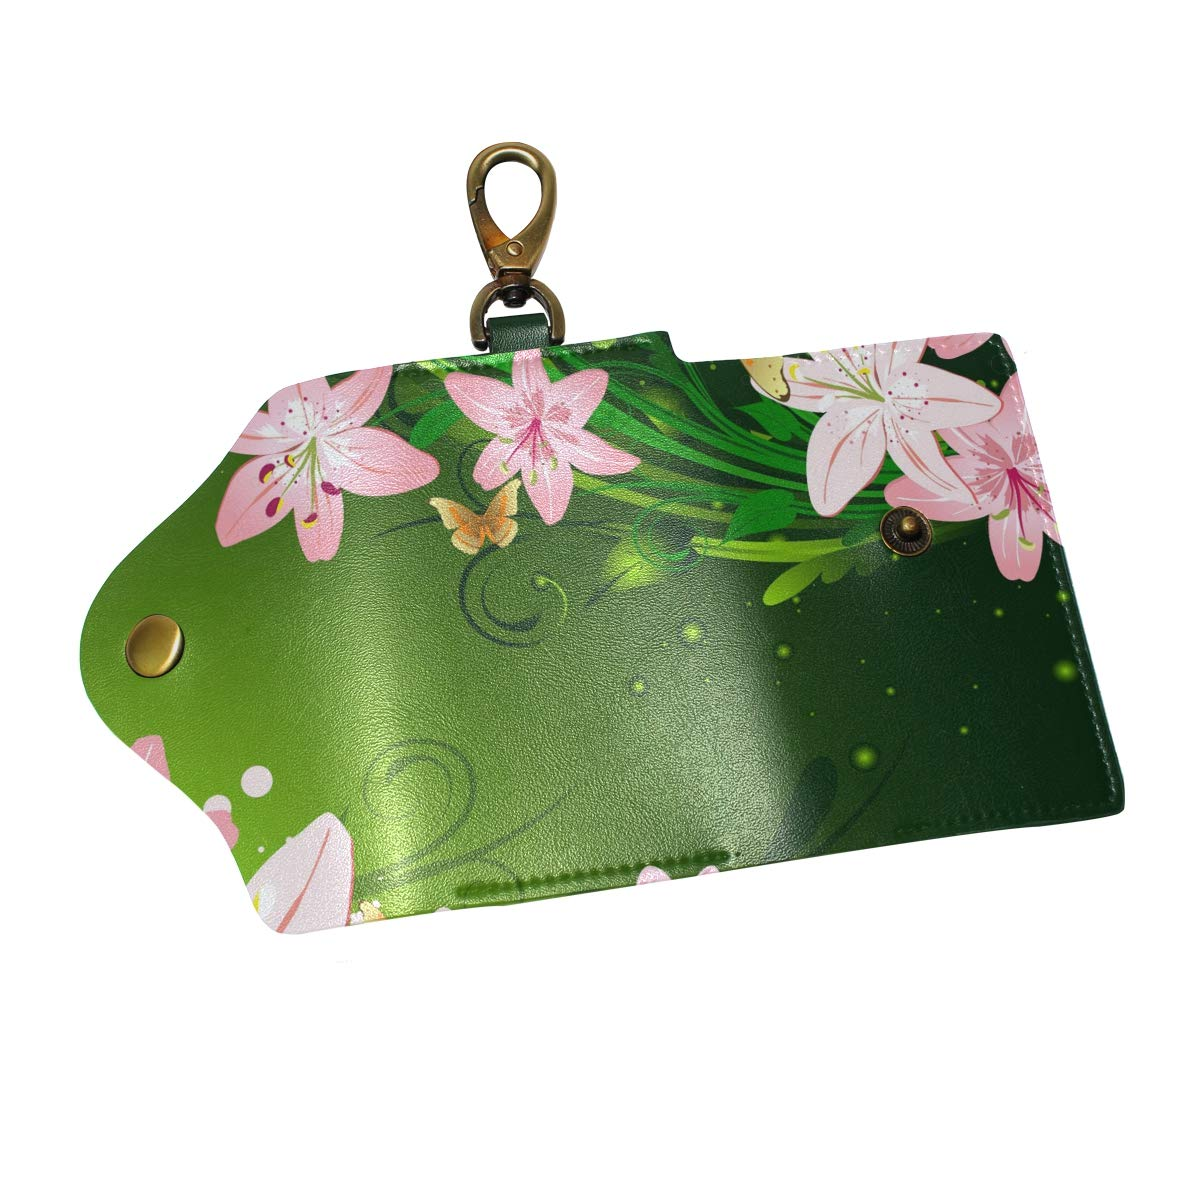 KEAKIA Floral Lily Leather Key Case Wallets Tri-fold Key Holder Keychains with 6 Hooks 2 Slot Snap Closure for Men Women